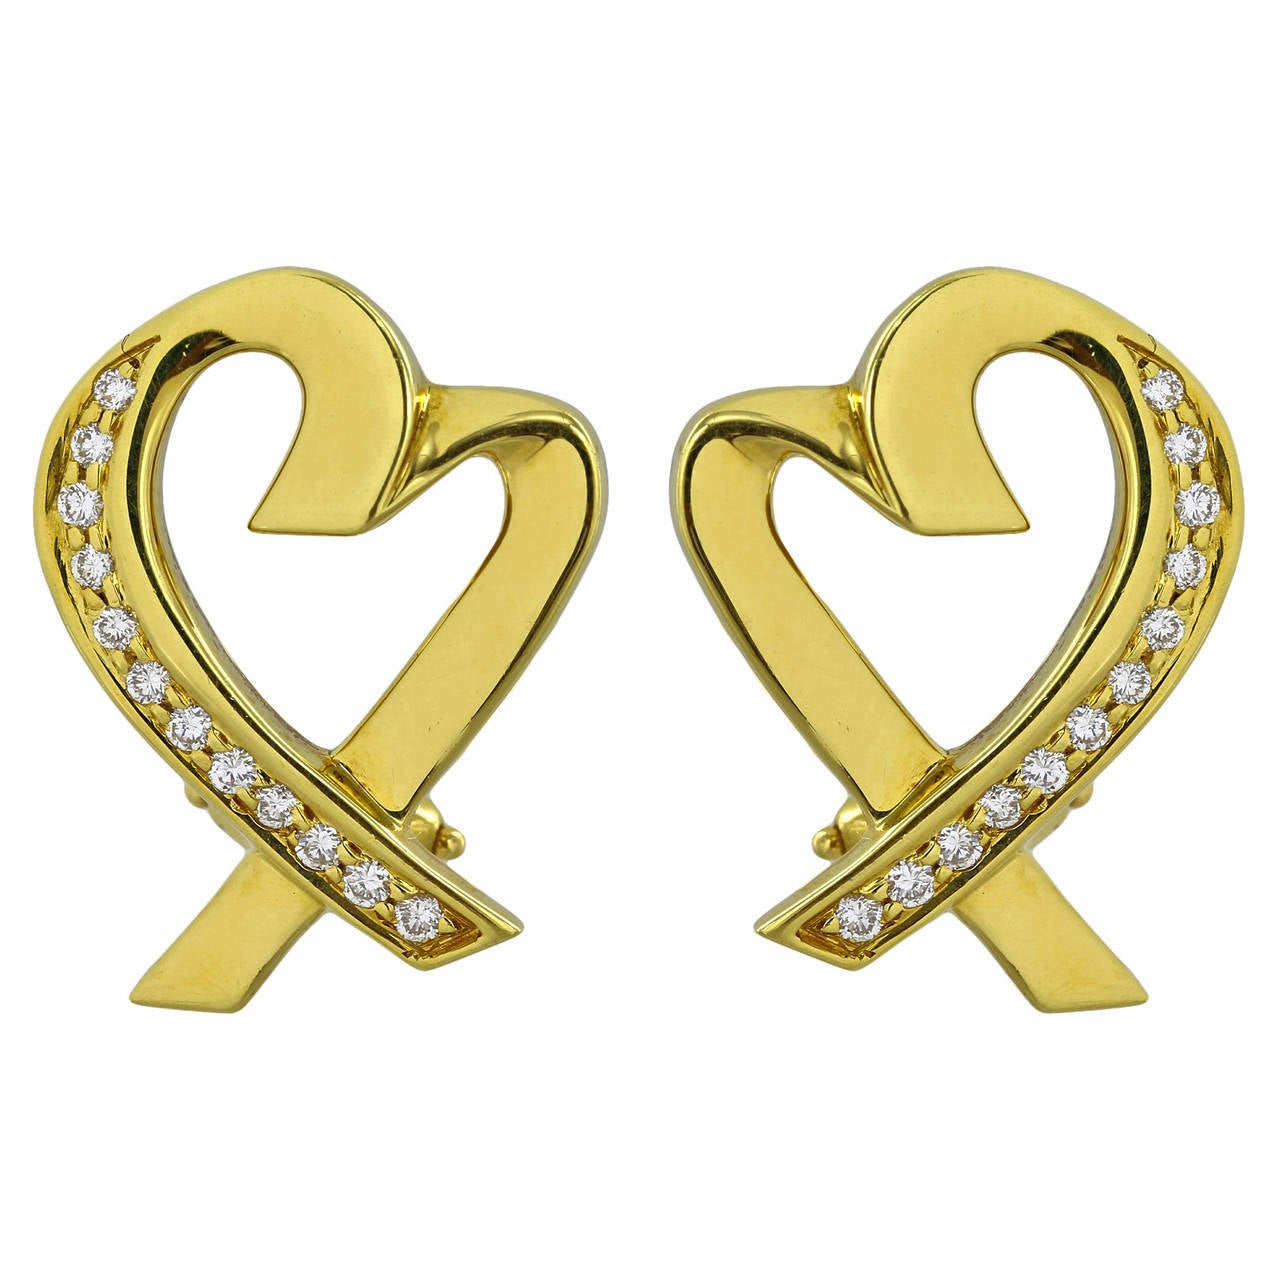 Tiffany & Co. Paloma Picasso Diamond Gold Heart Earrings For Sale